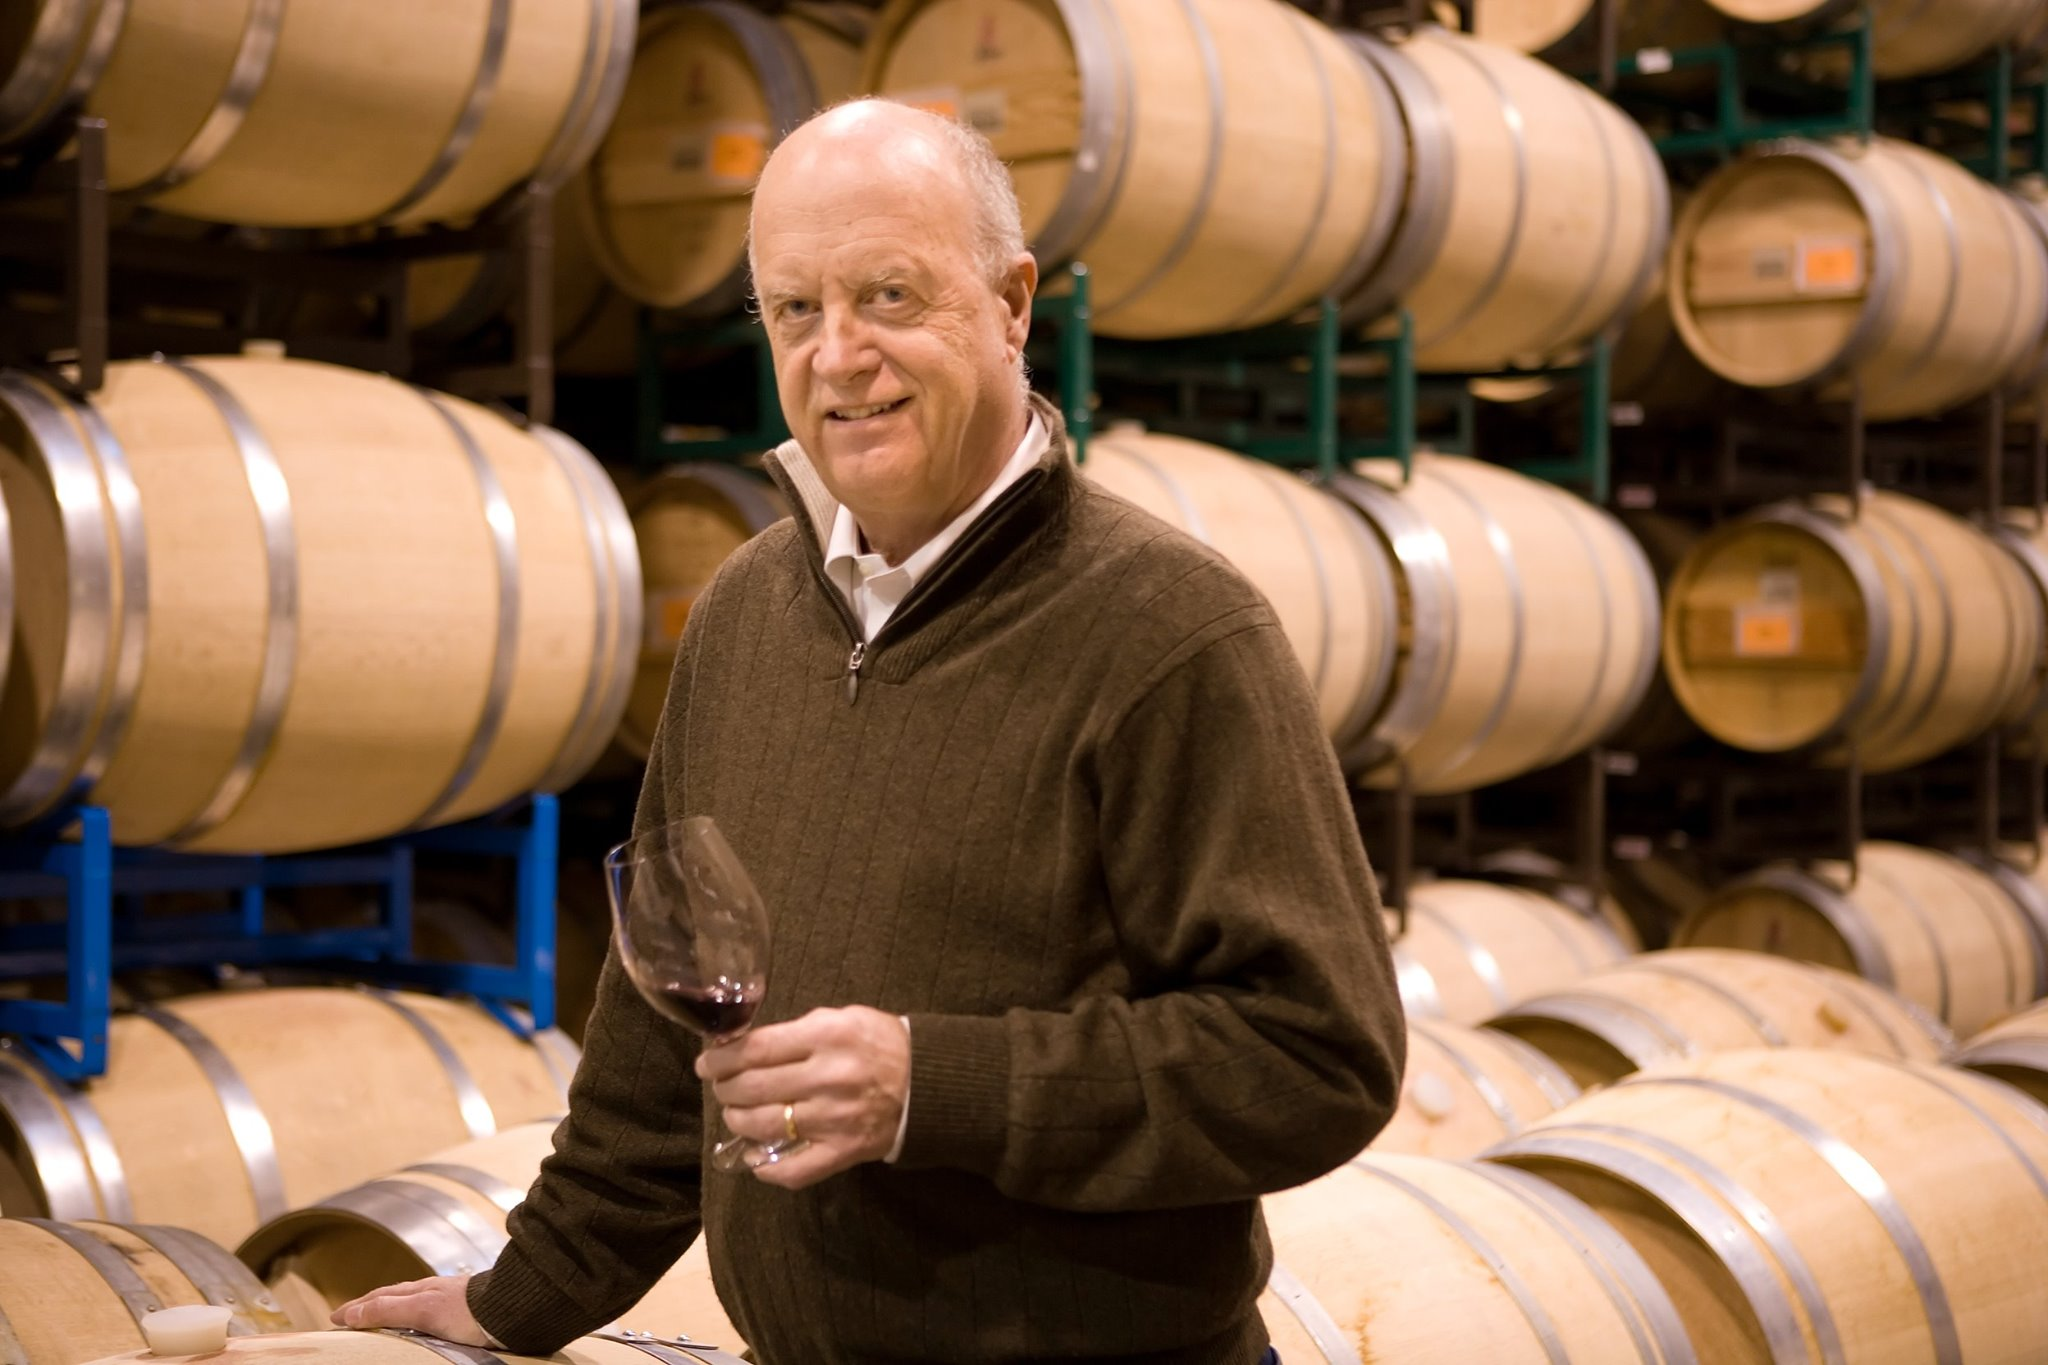 A great innovator in Washington wine, former Chateau St. Michelle CEO and Long Shadows founder, Allen Shoup.